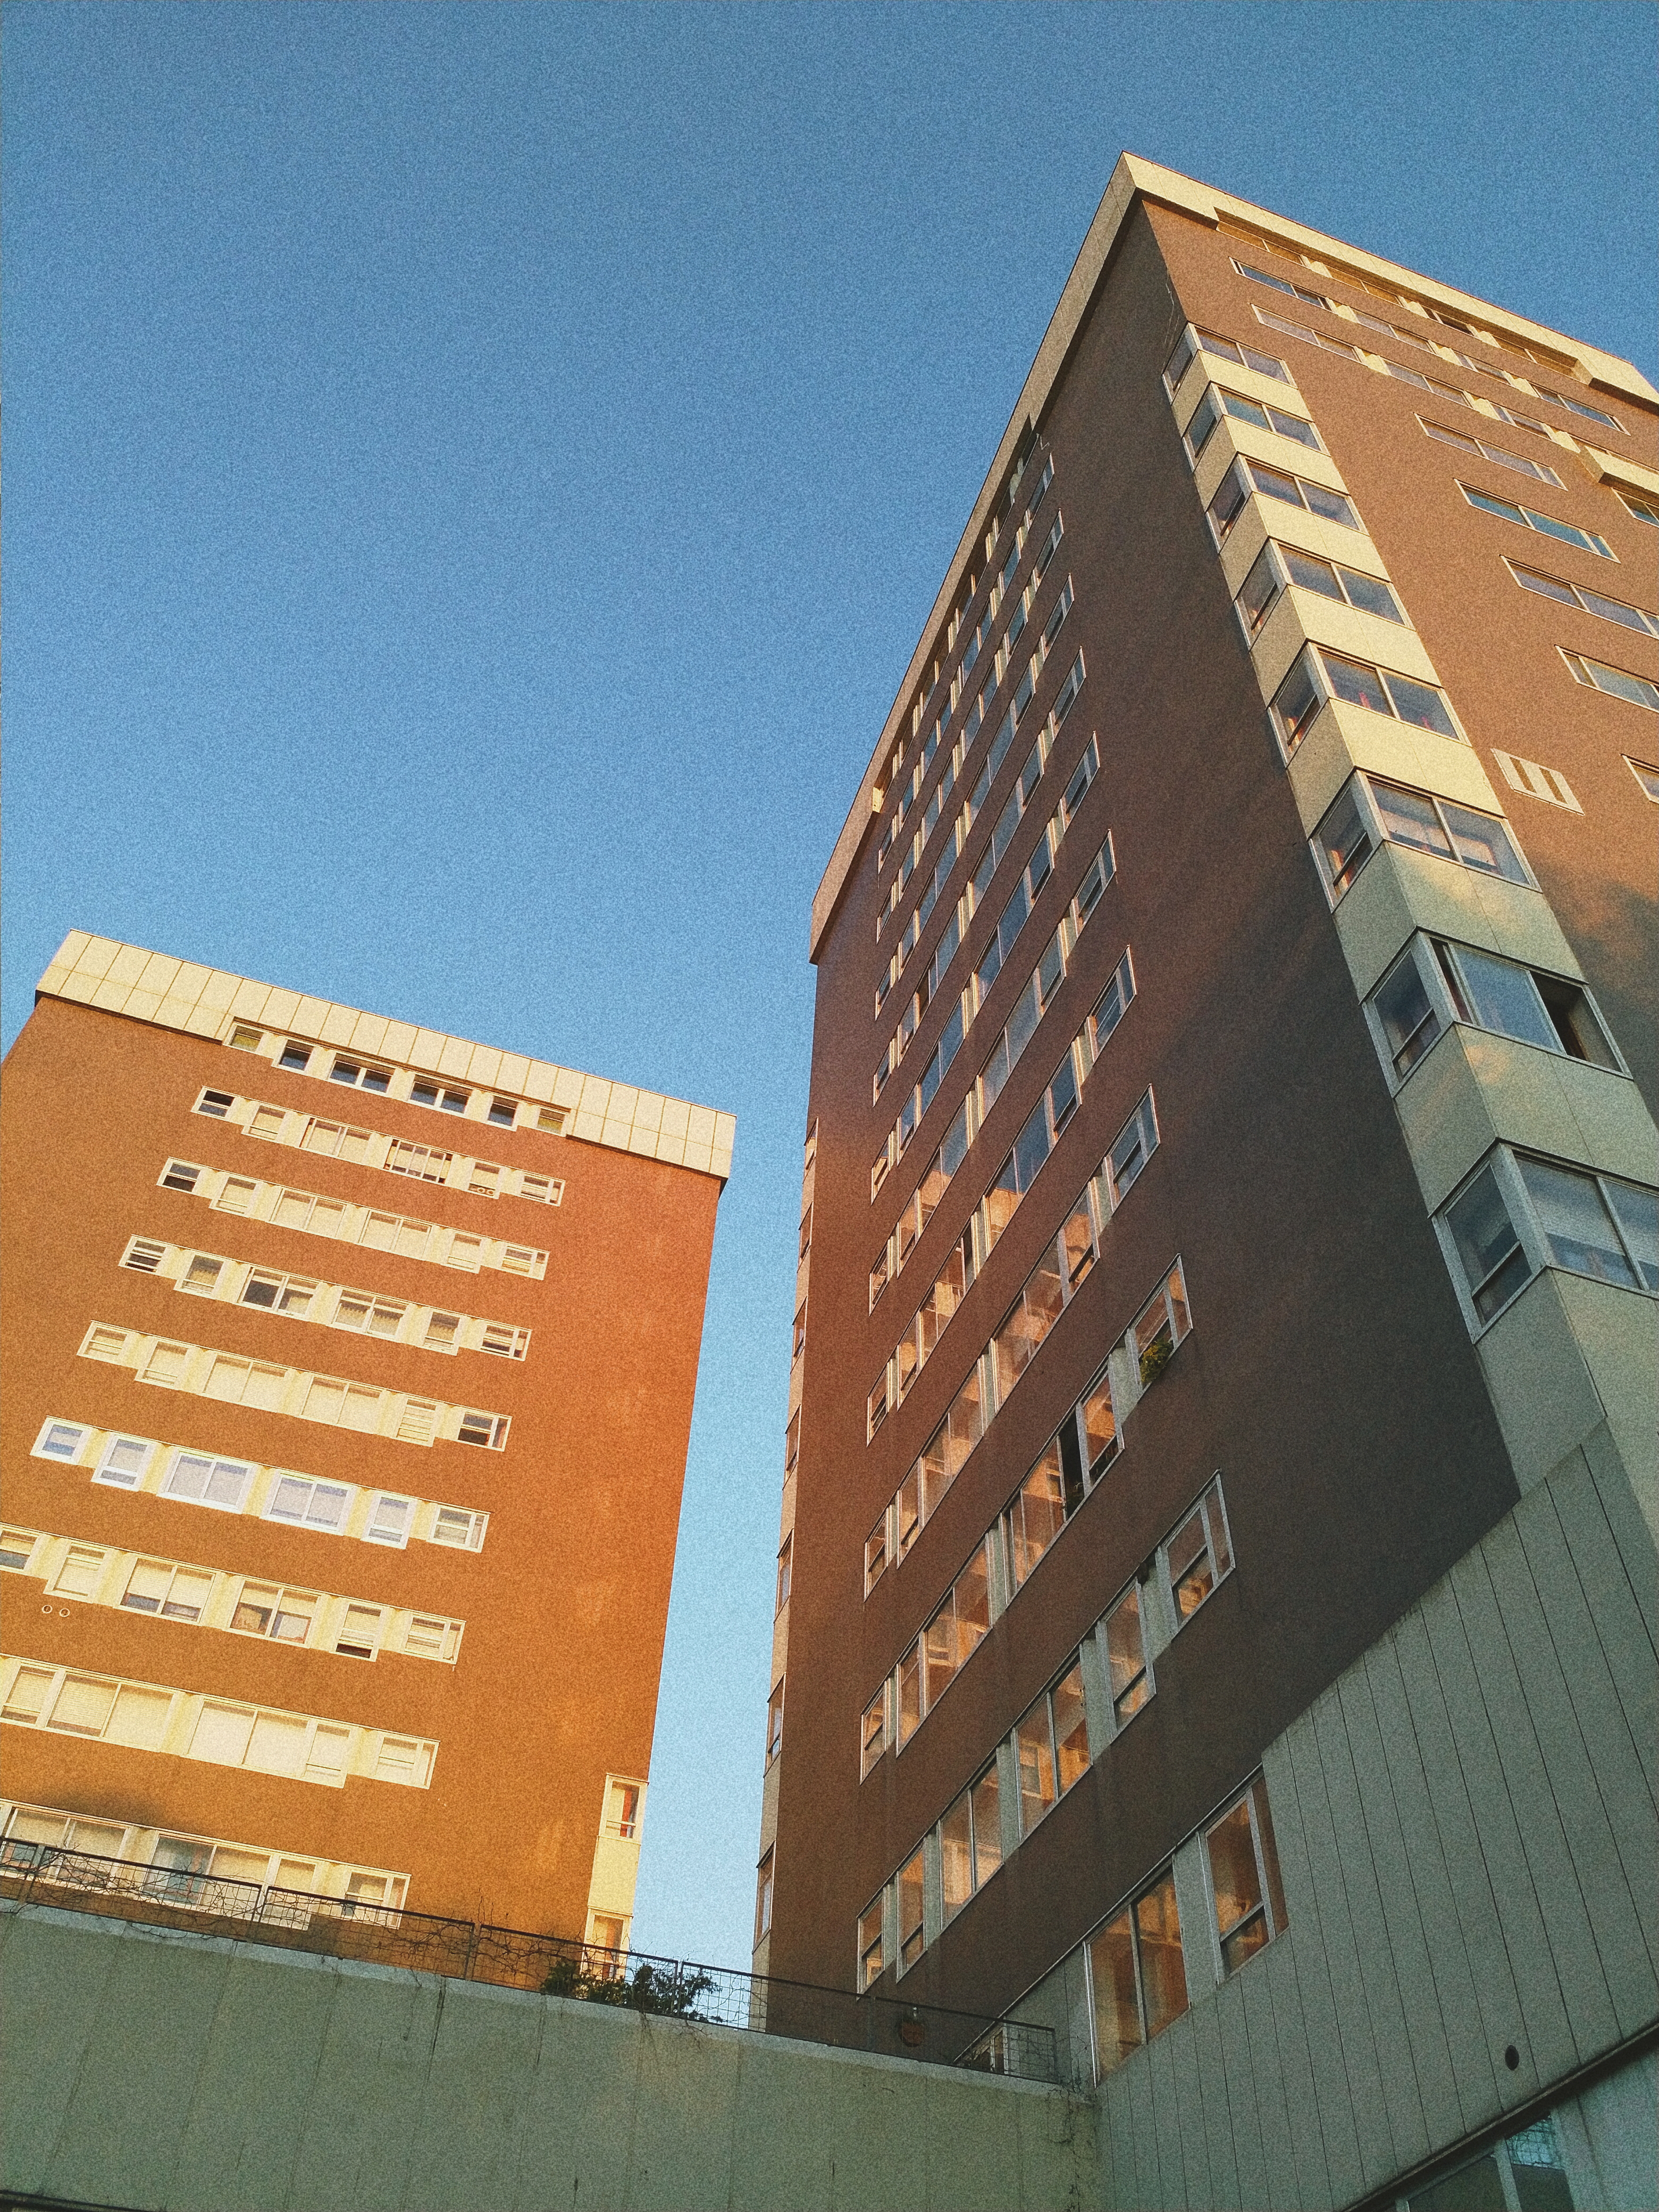 Low-angle Photography of Orange High-rise Buildings